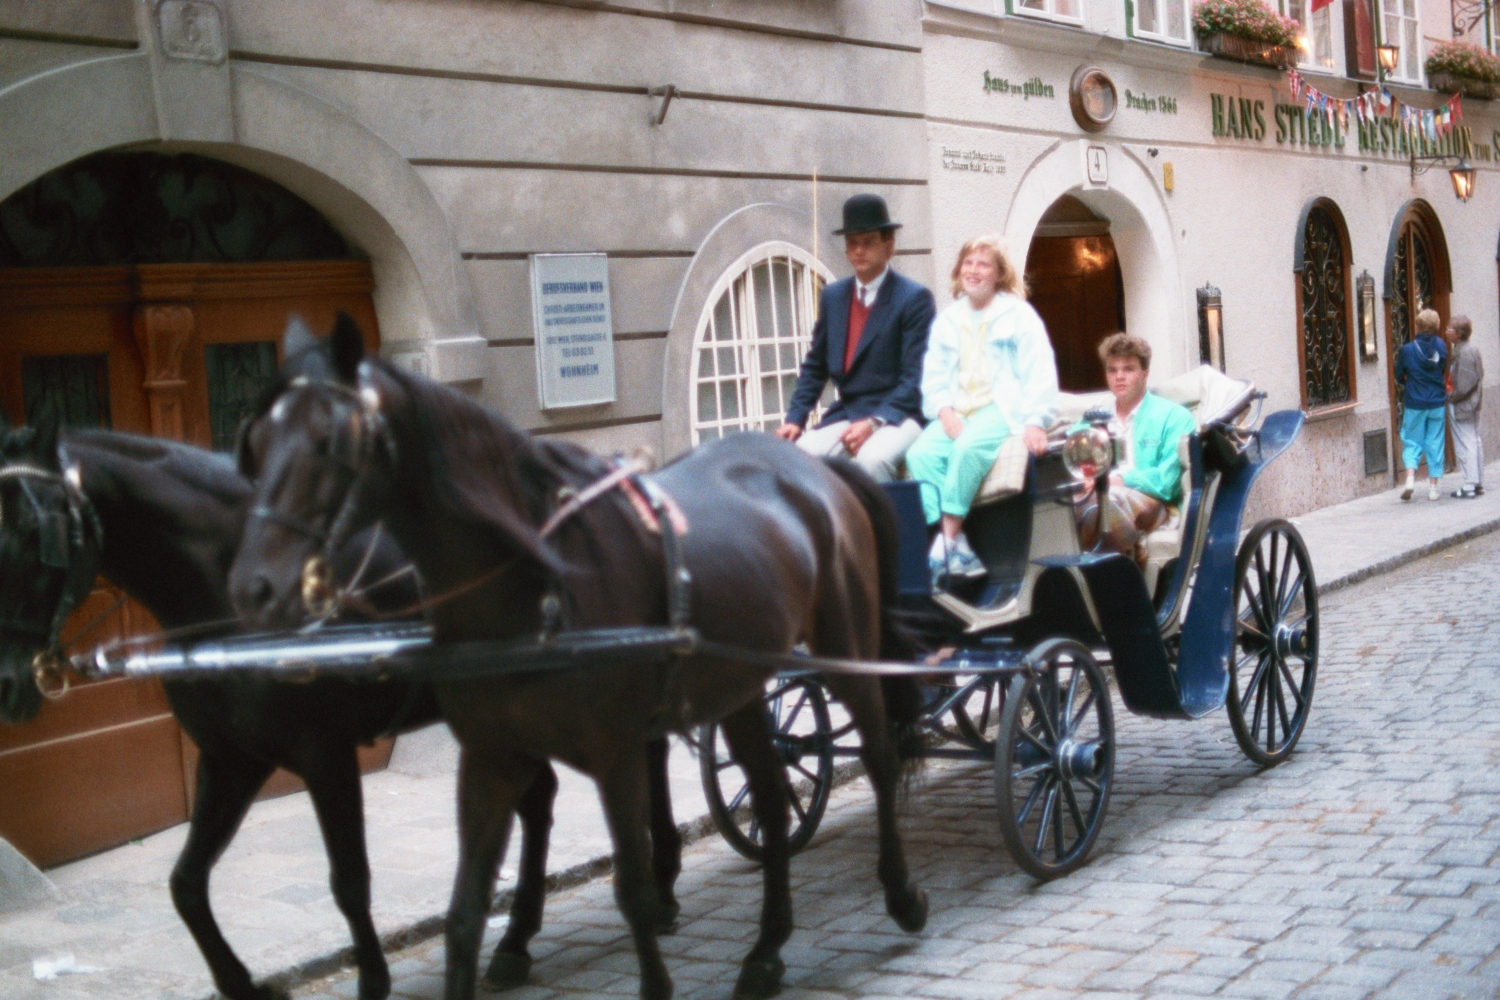 Amy, Russel and Matt in a horse-drawn carriage in Vienna, 1980s